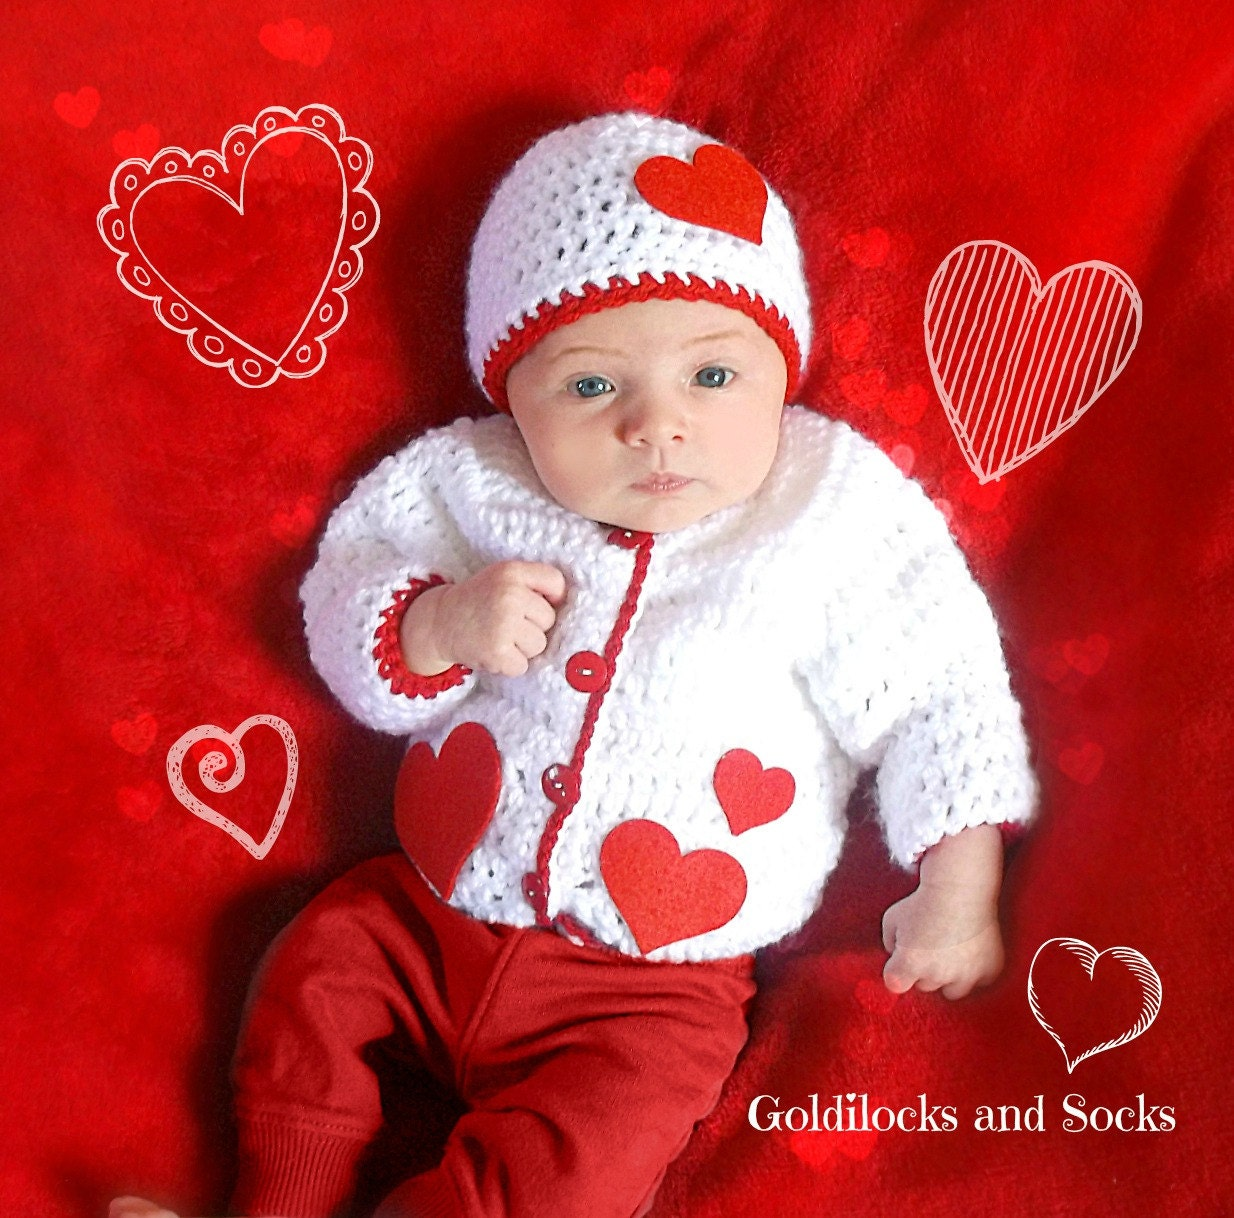 Baby Valentines outfit girl heart outfit Valentines Day hat